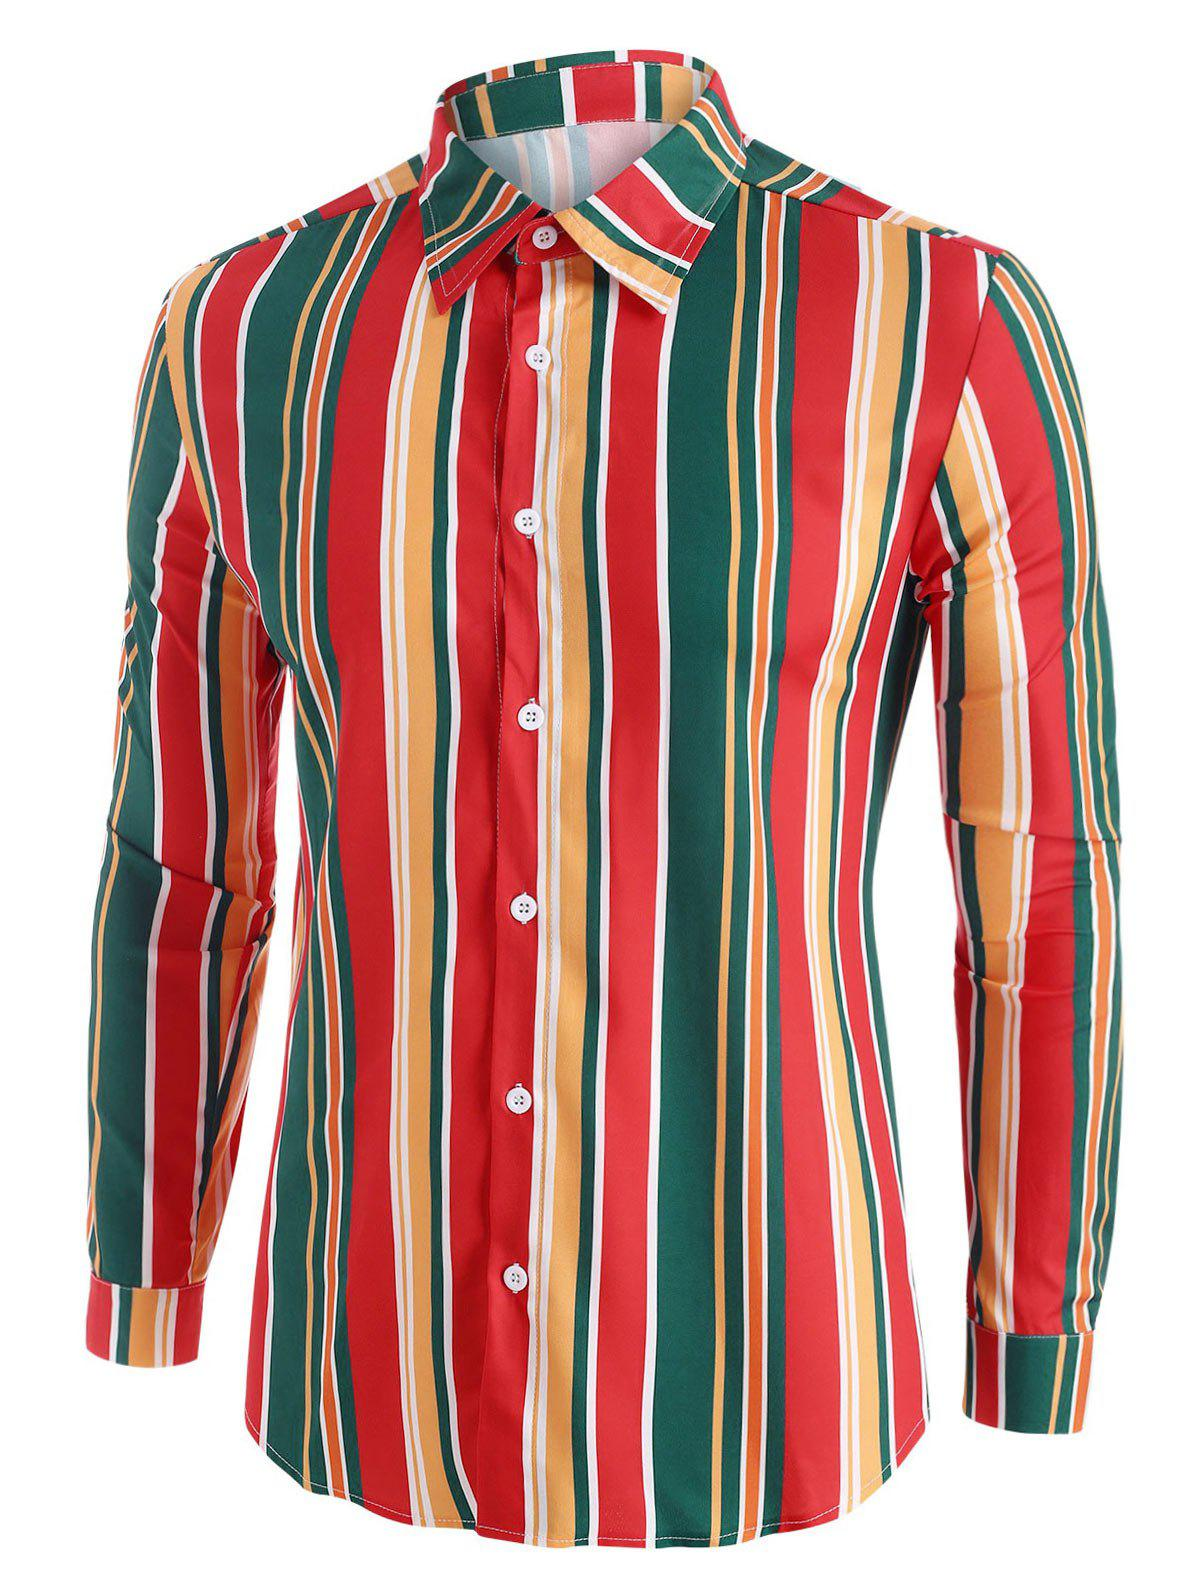 Colorful Striped Button Up Long Sleeve Shirt - multicolor 2XL